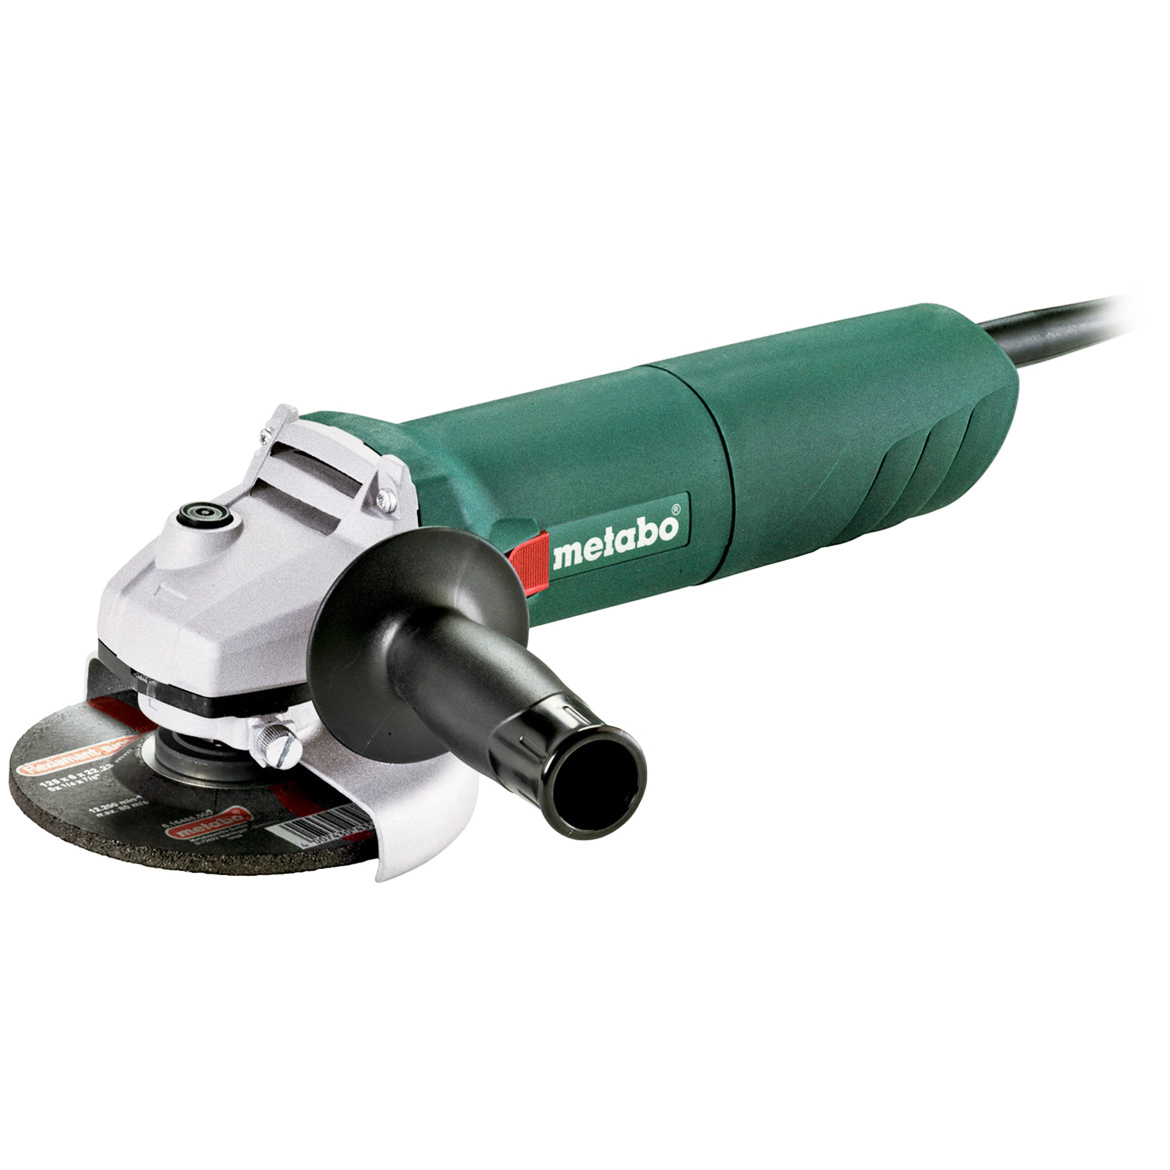 Metabo 601237420 4-1/2 - 5-Inch 10.0-Amp 10,000 RPM Power...